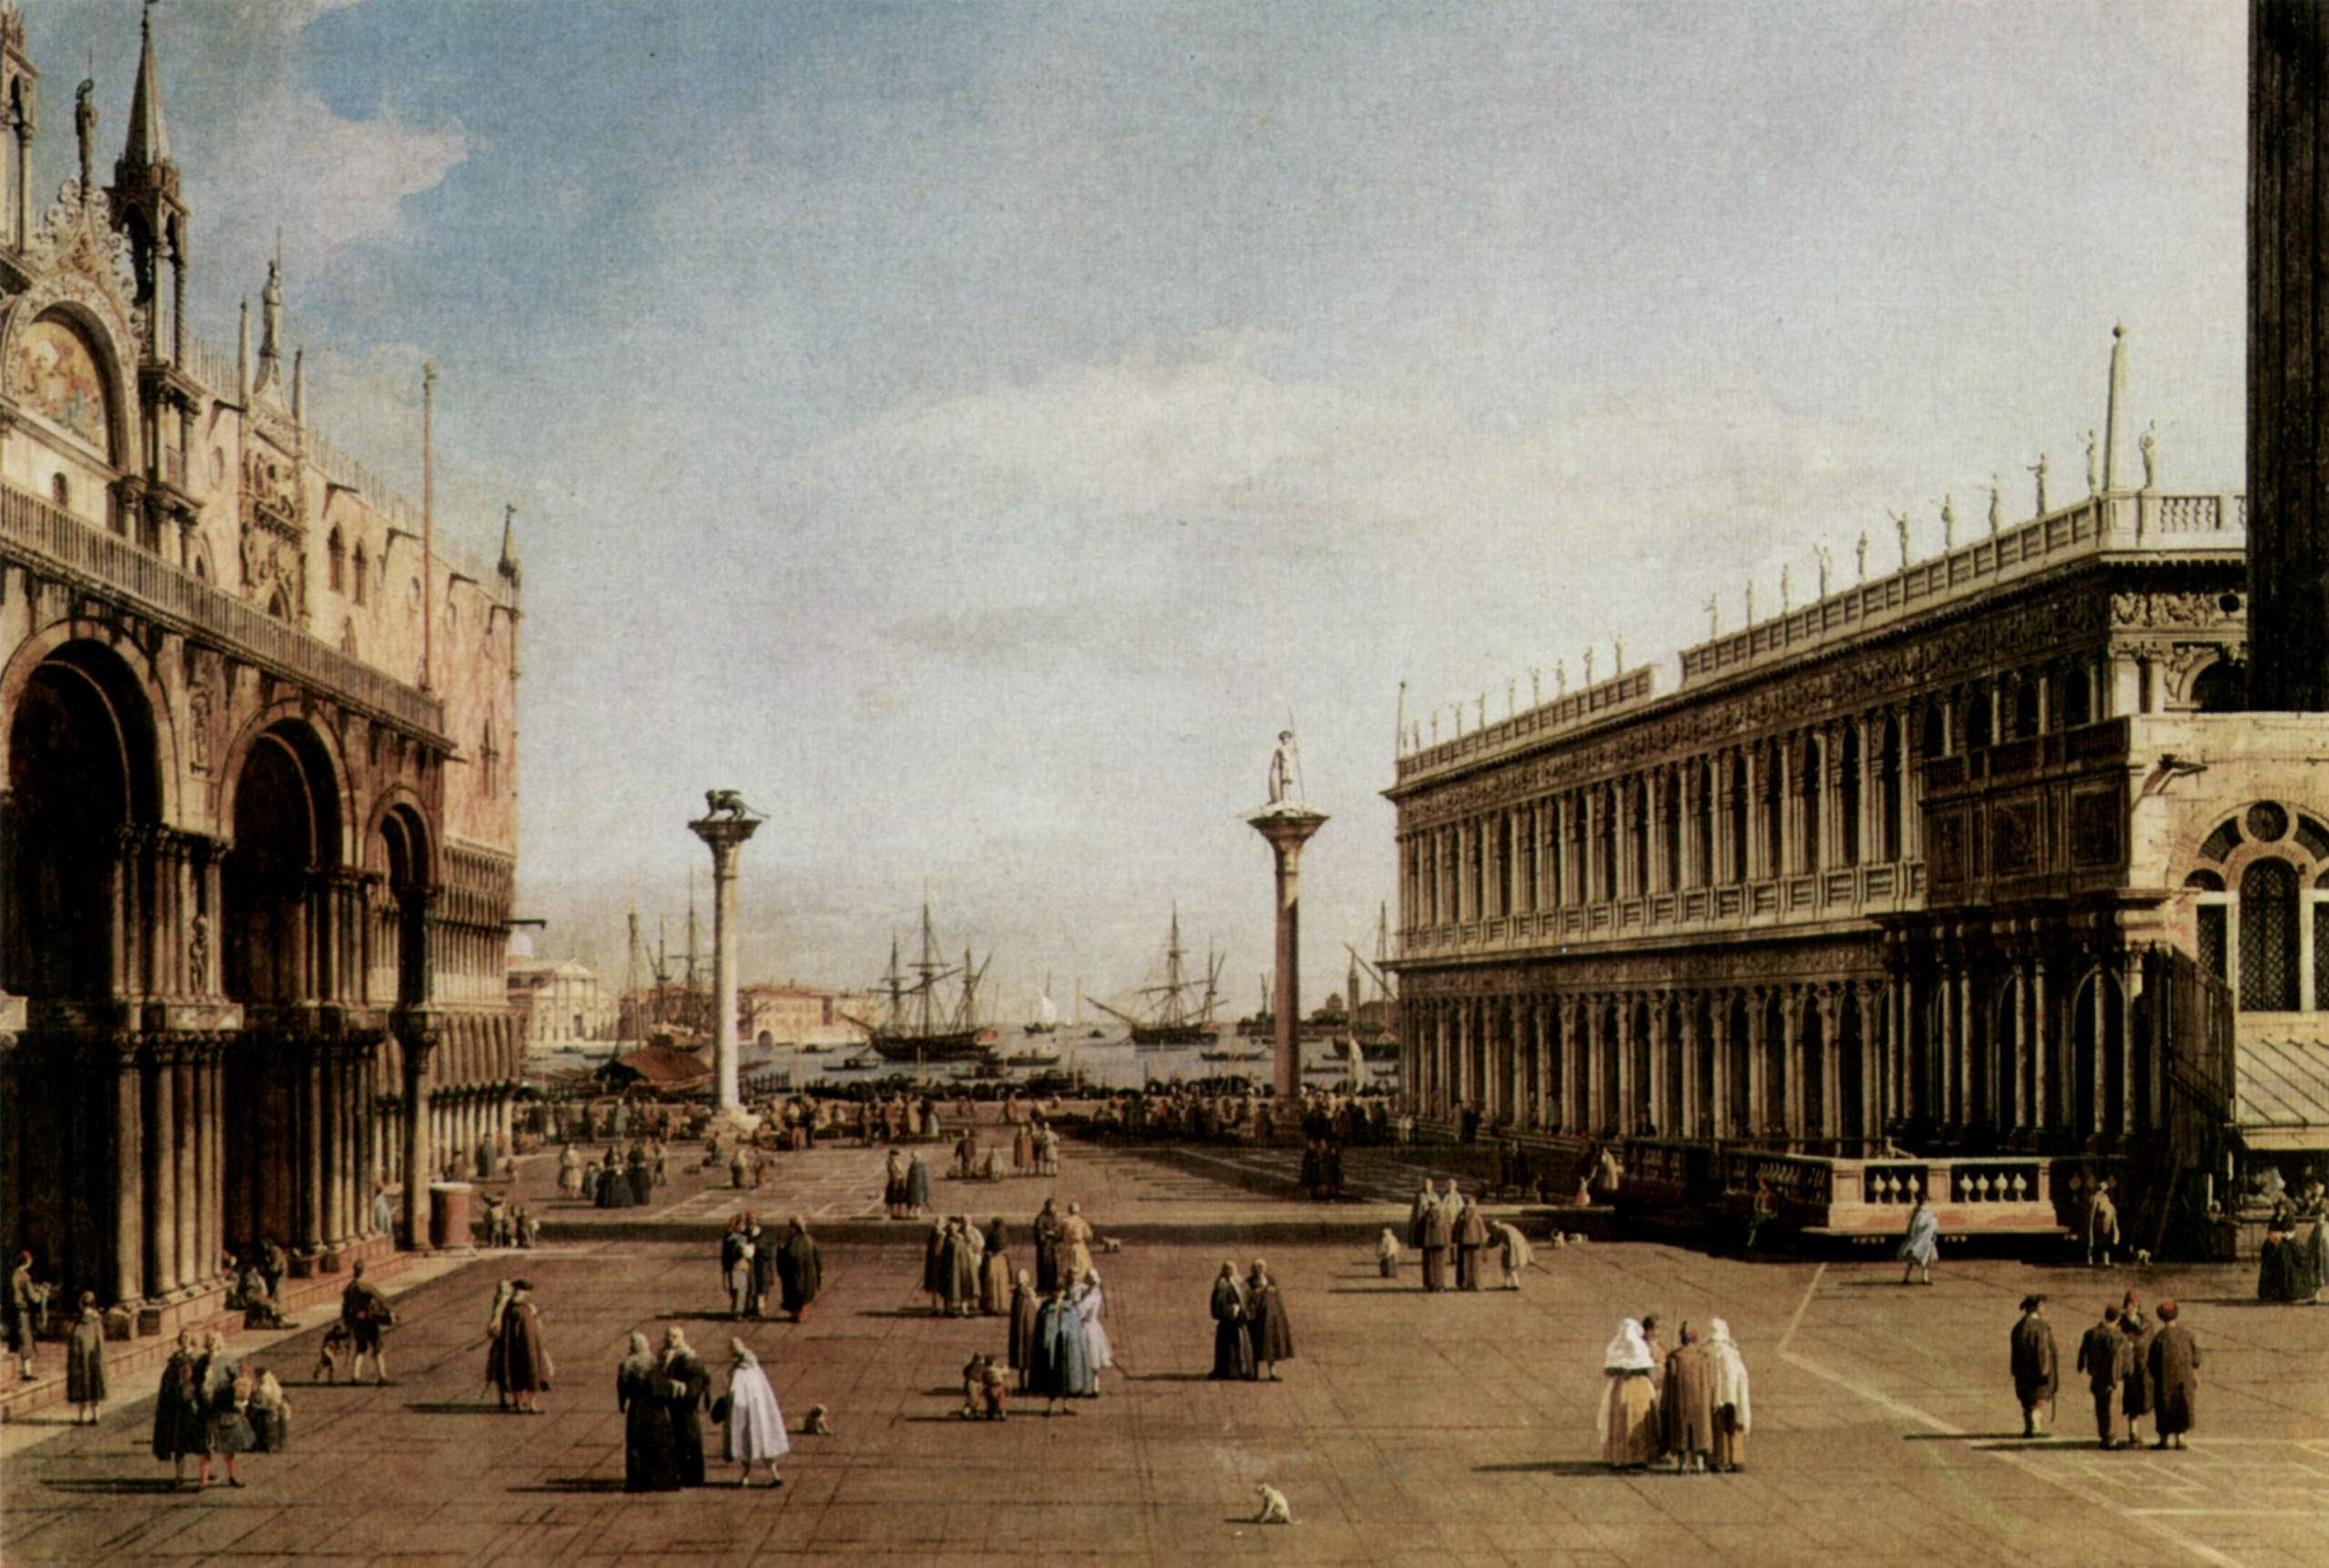 File:Canaletto (II) 018.jpg